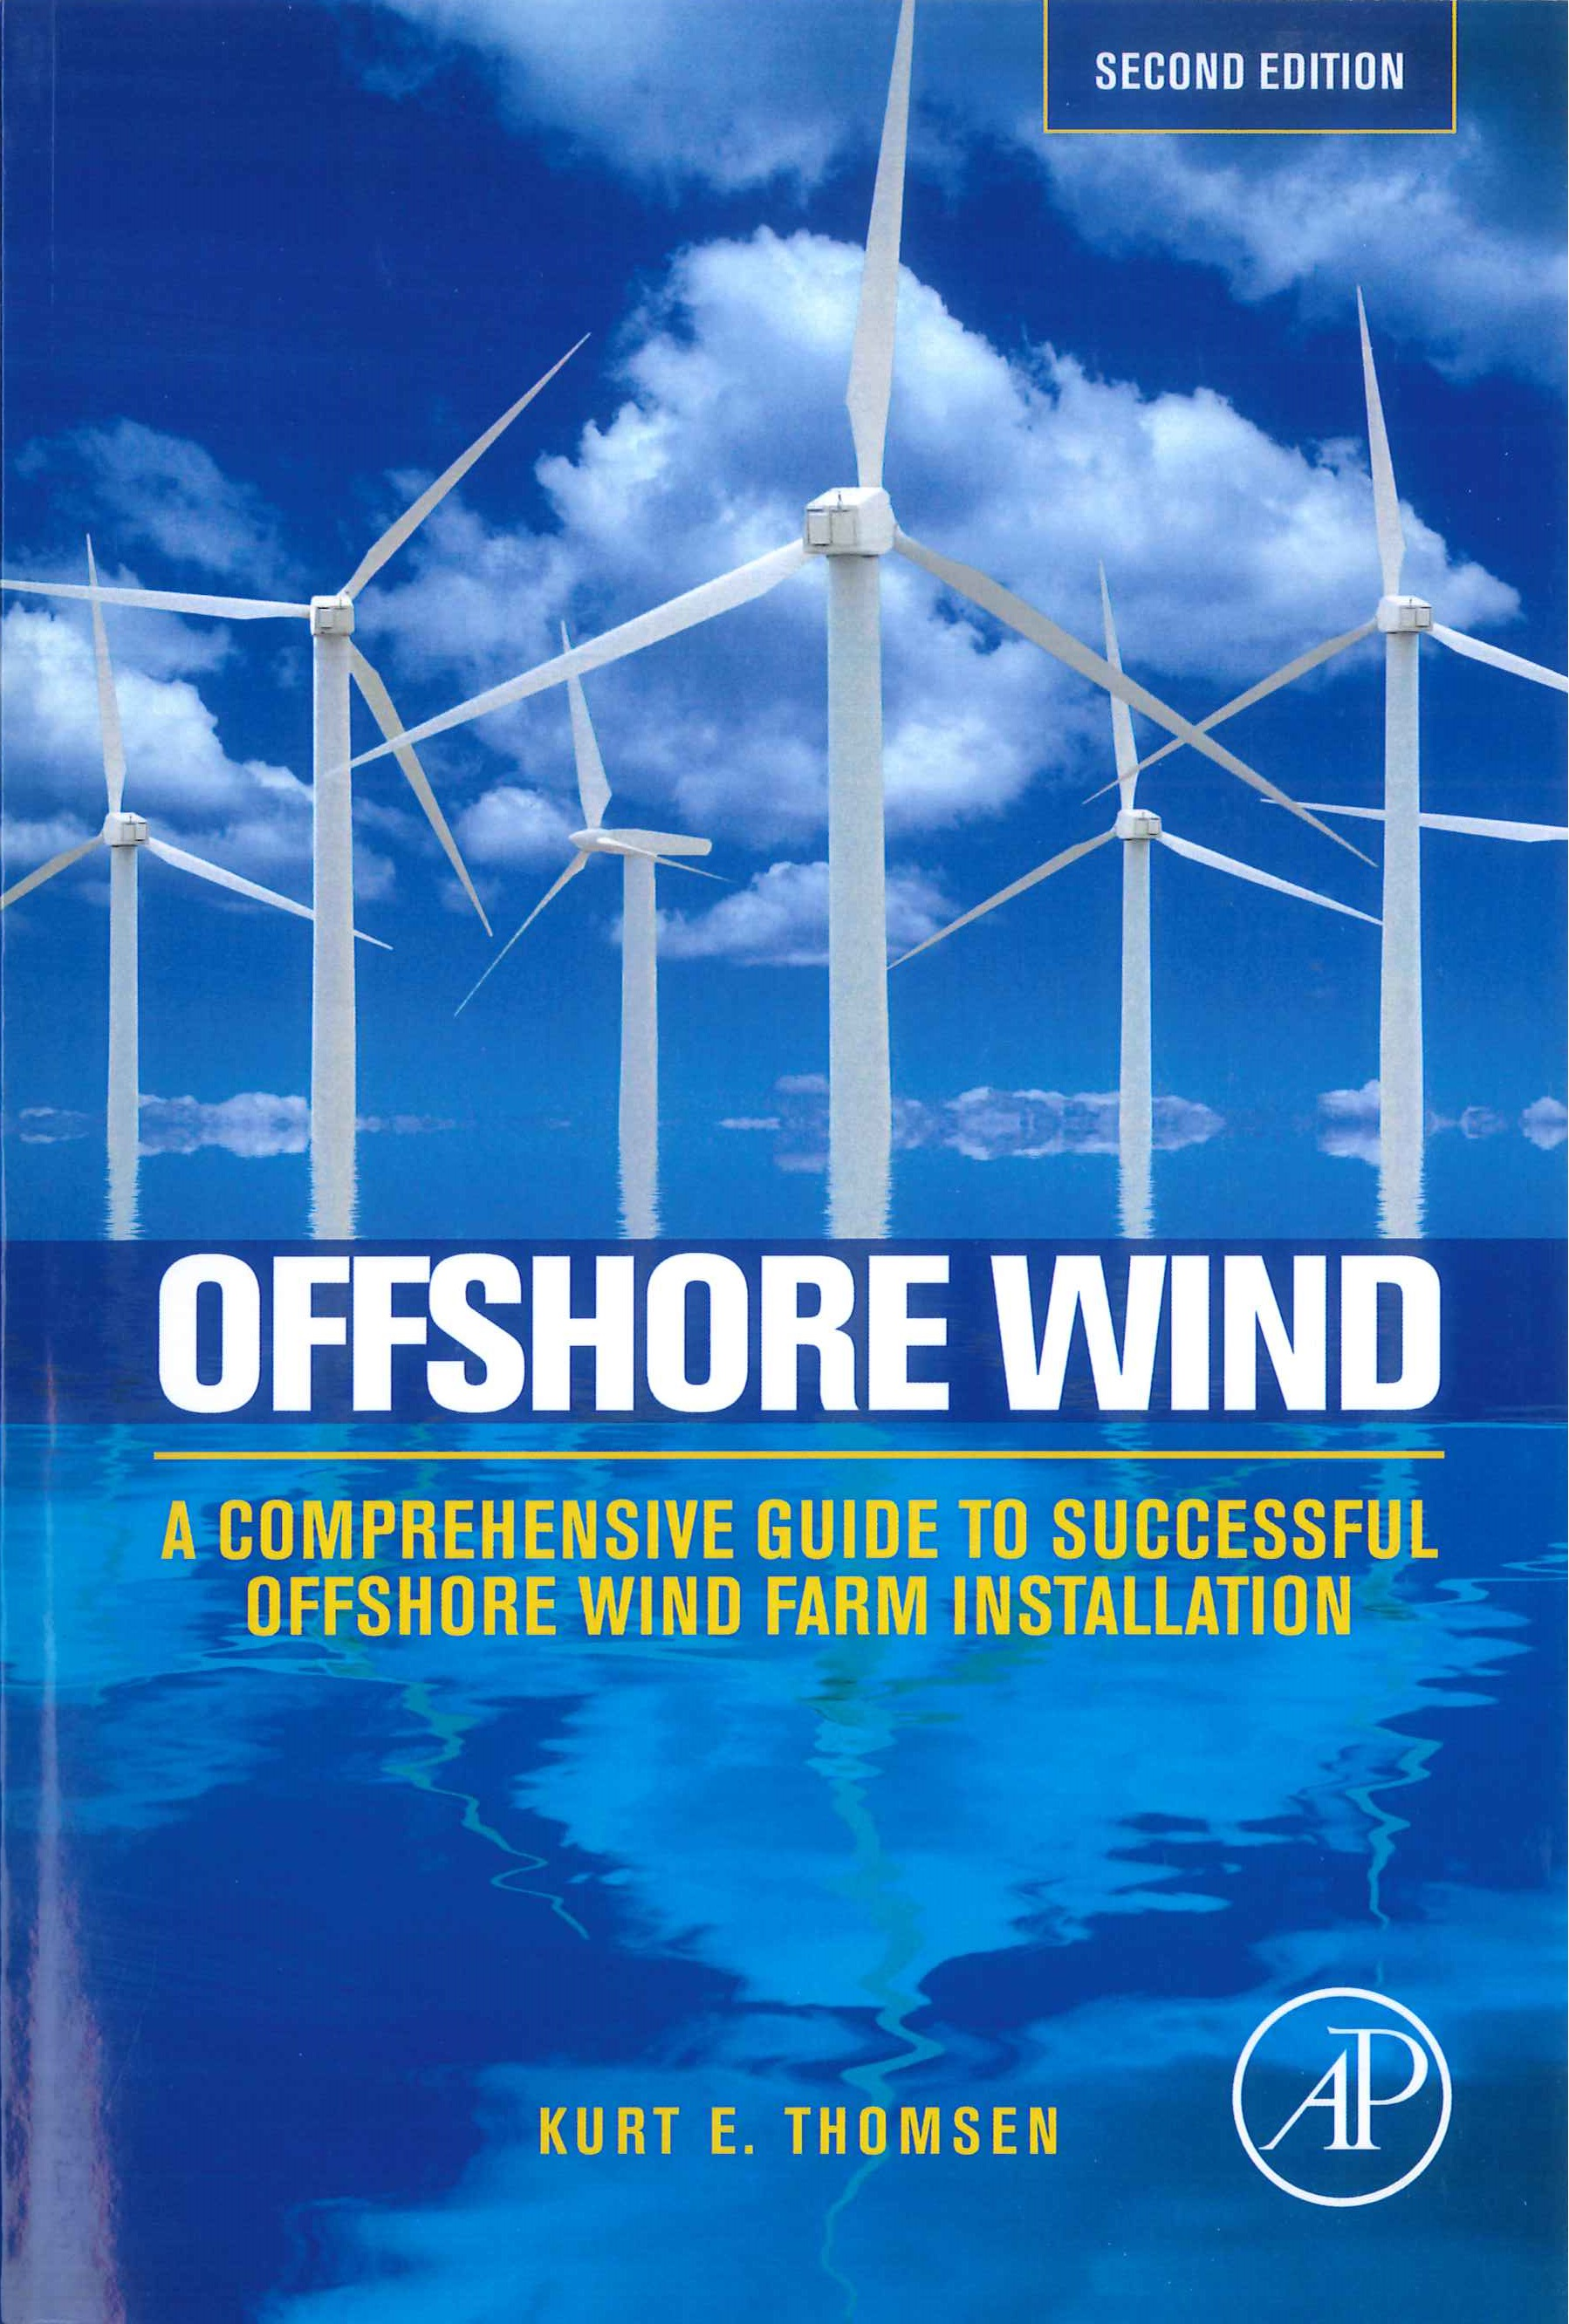 Offshore wind:a comprehensive guide to successful offshore wind farm installation